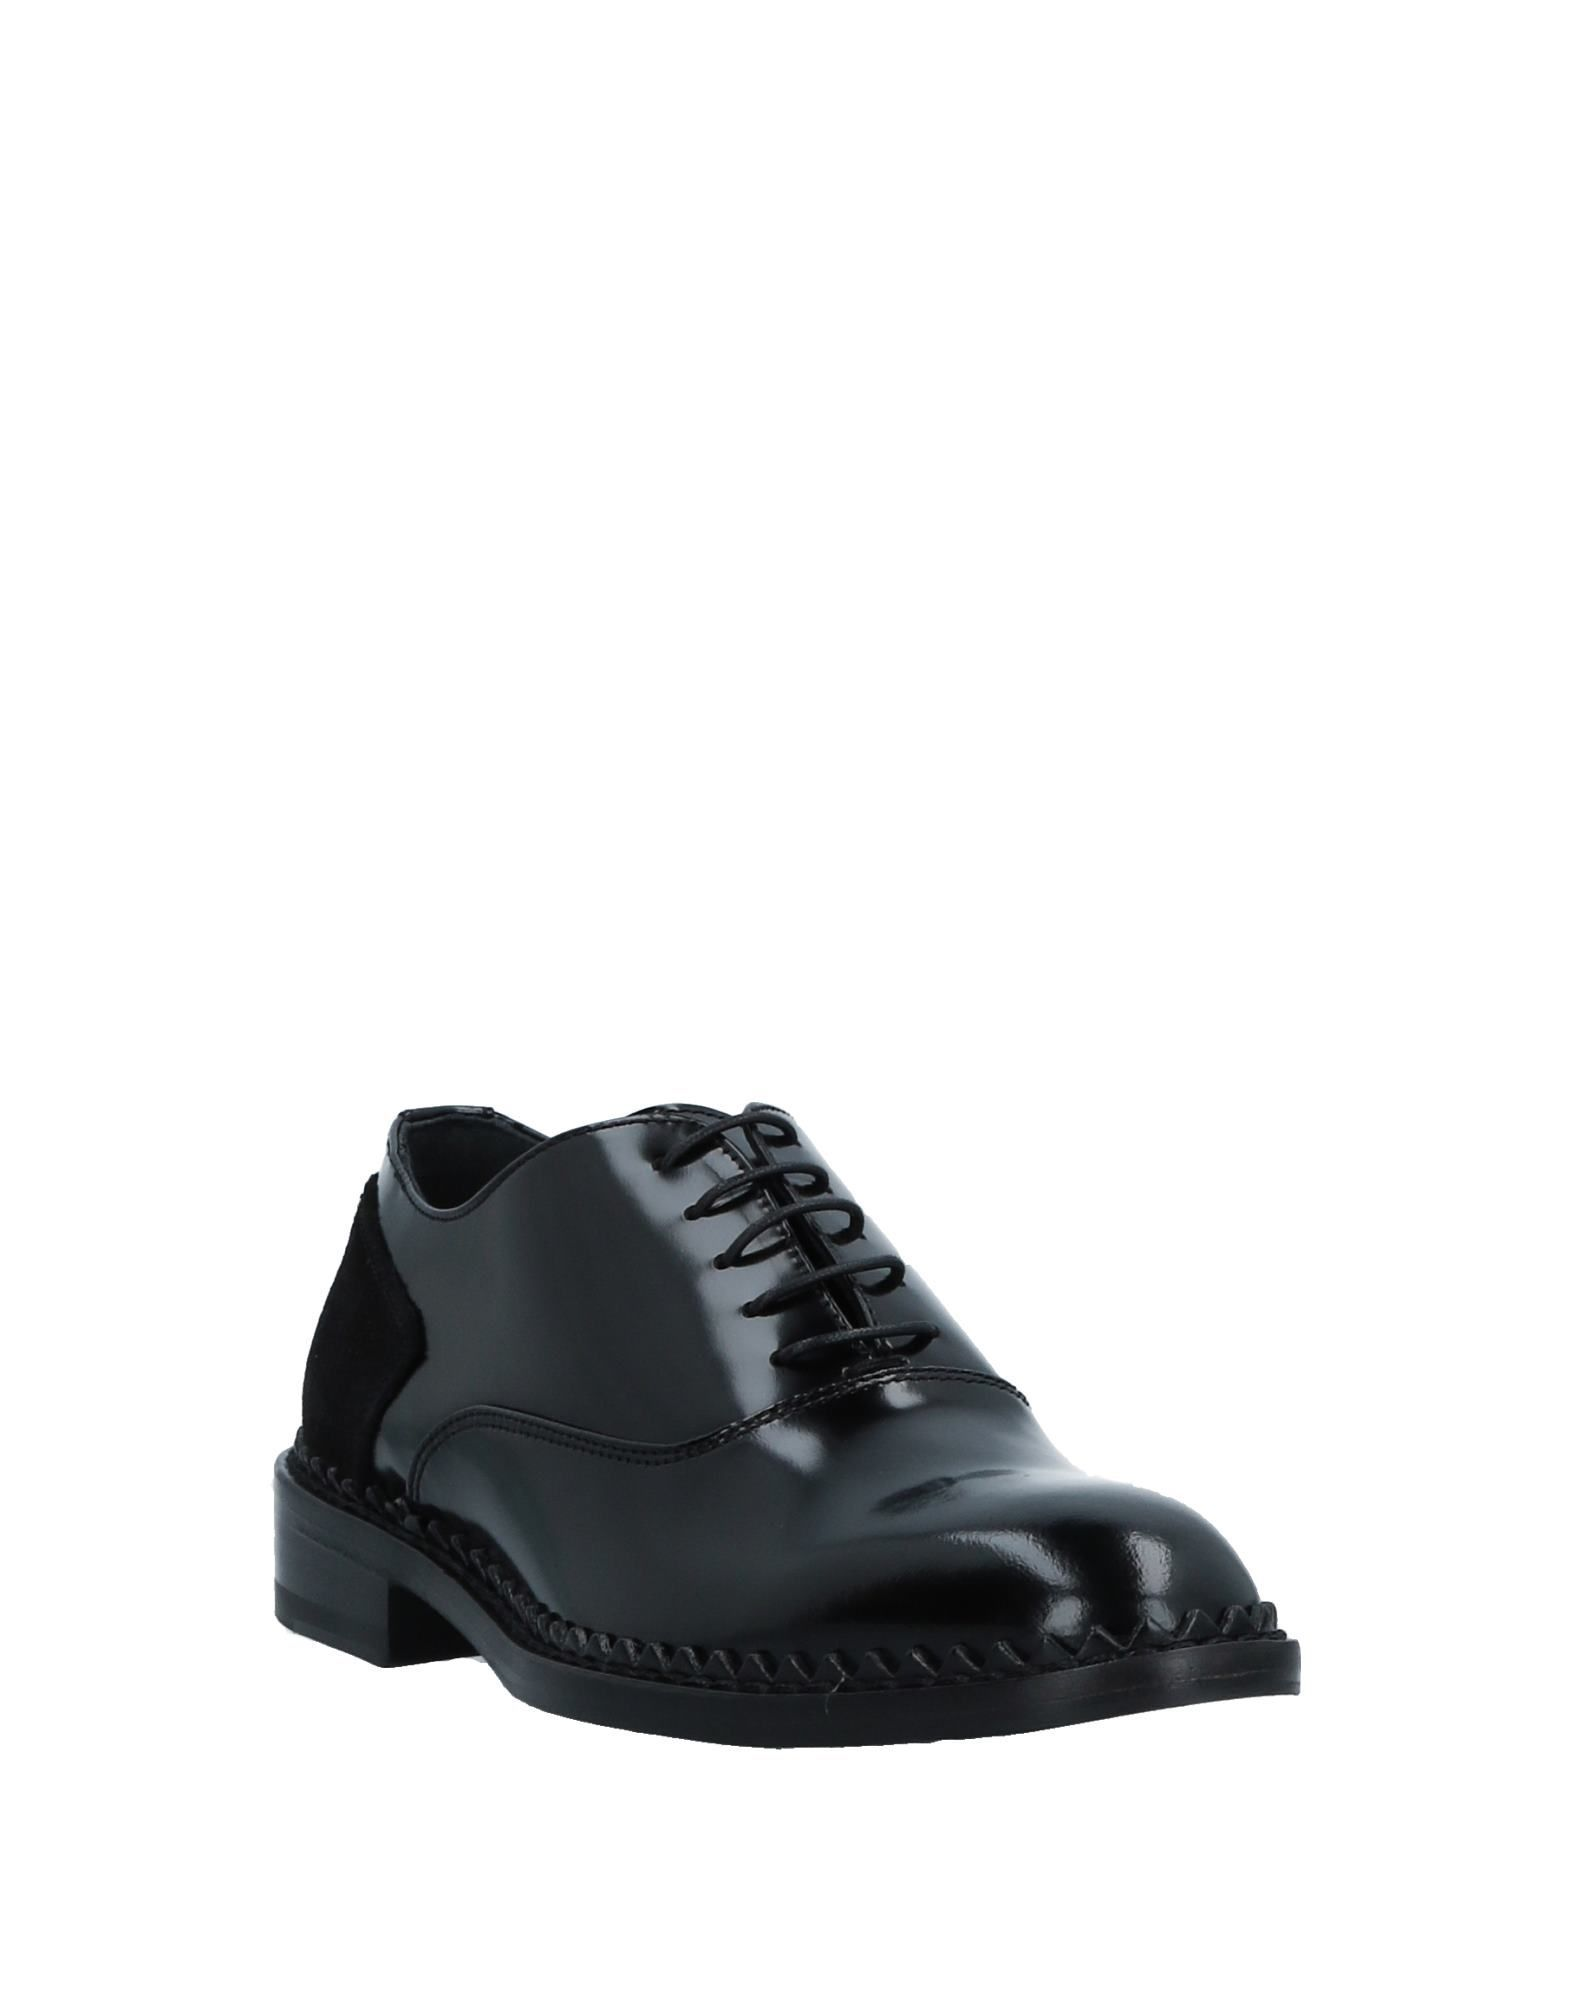 John Galliano Black Leather Lace Up Shoes